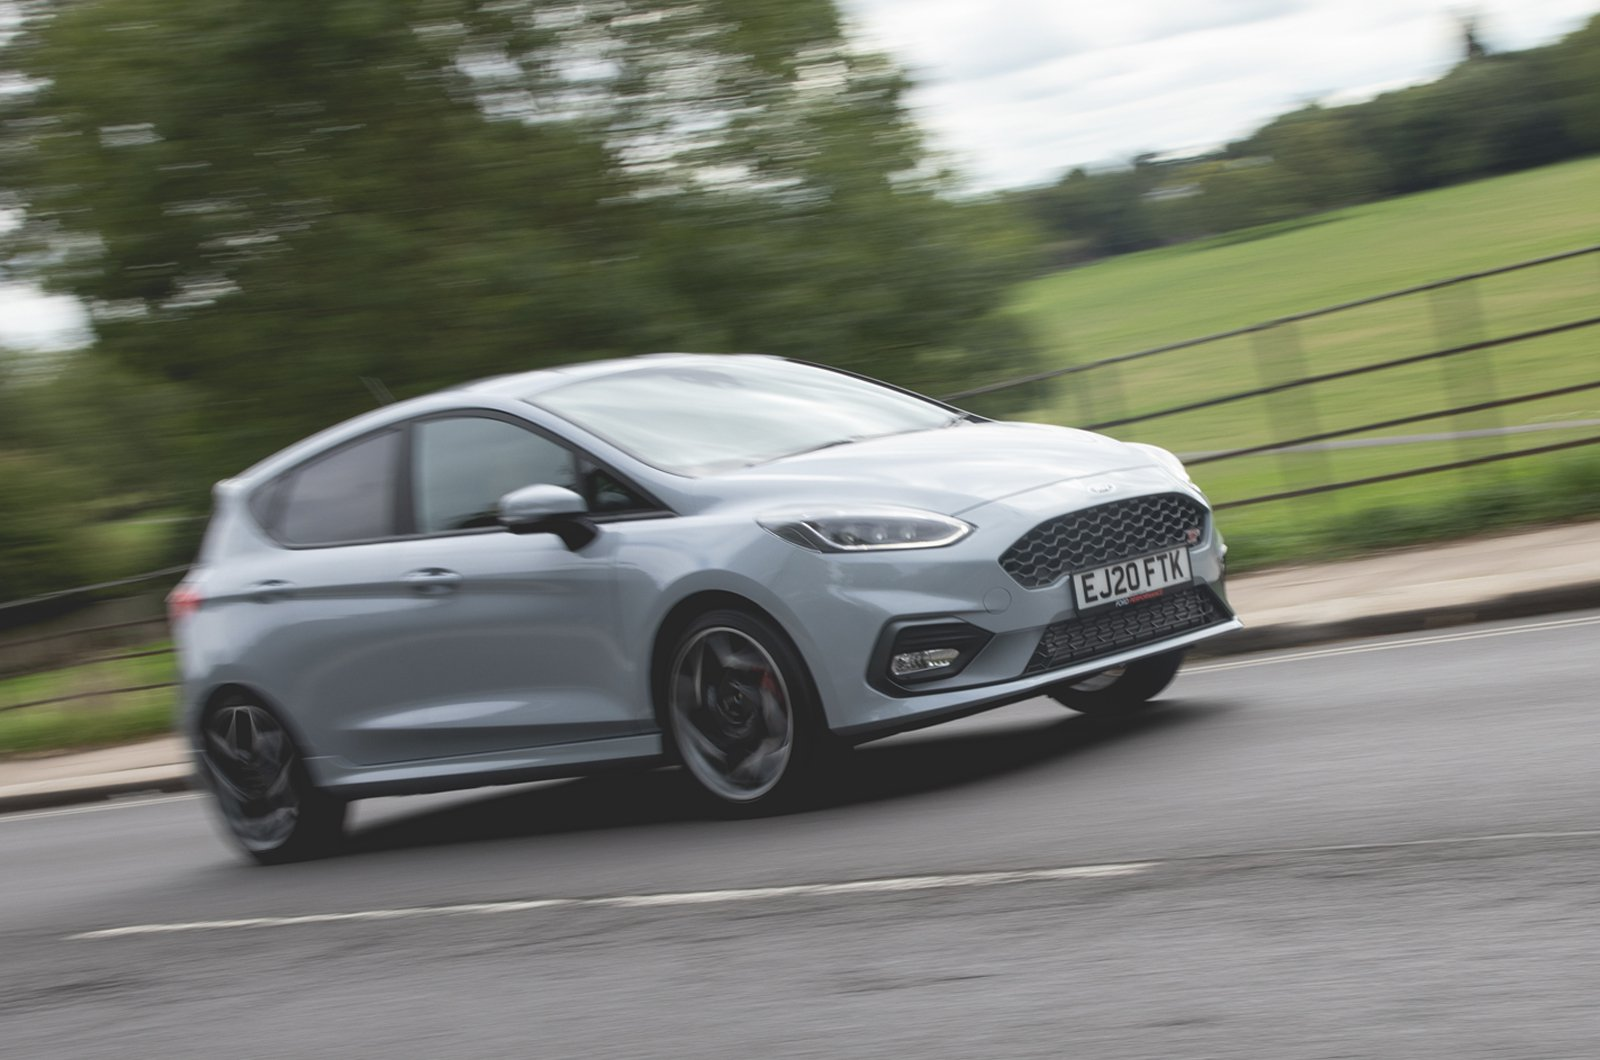 Ford Fiesta long-term tracking